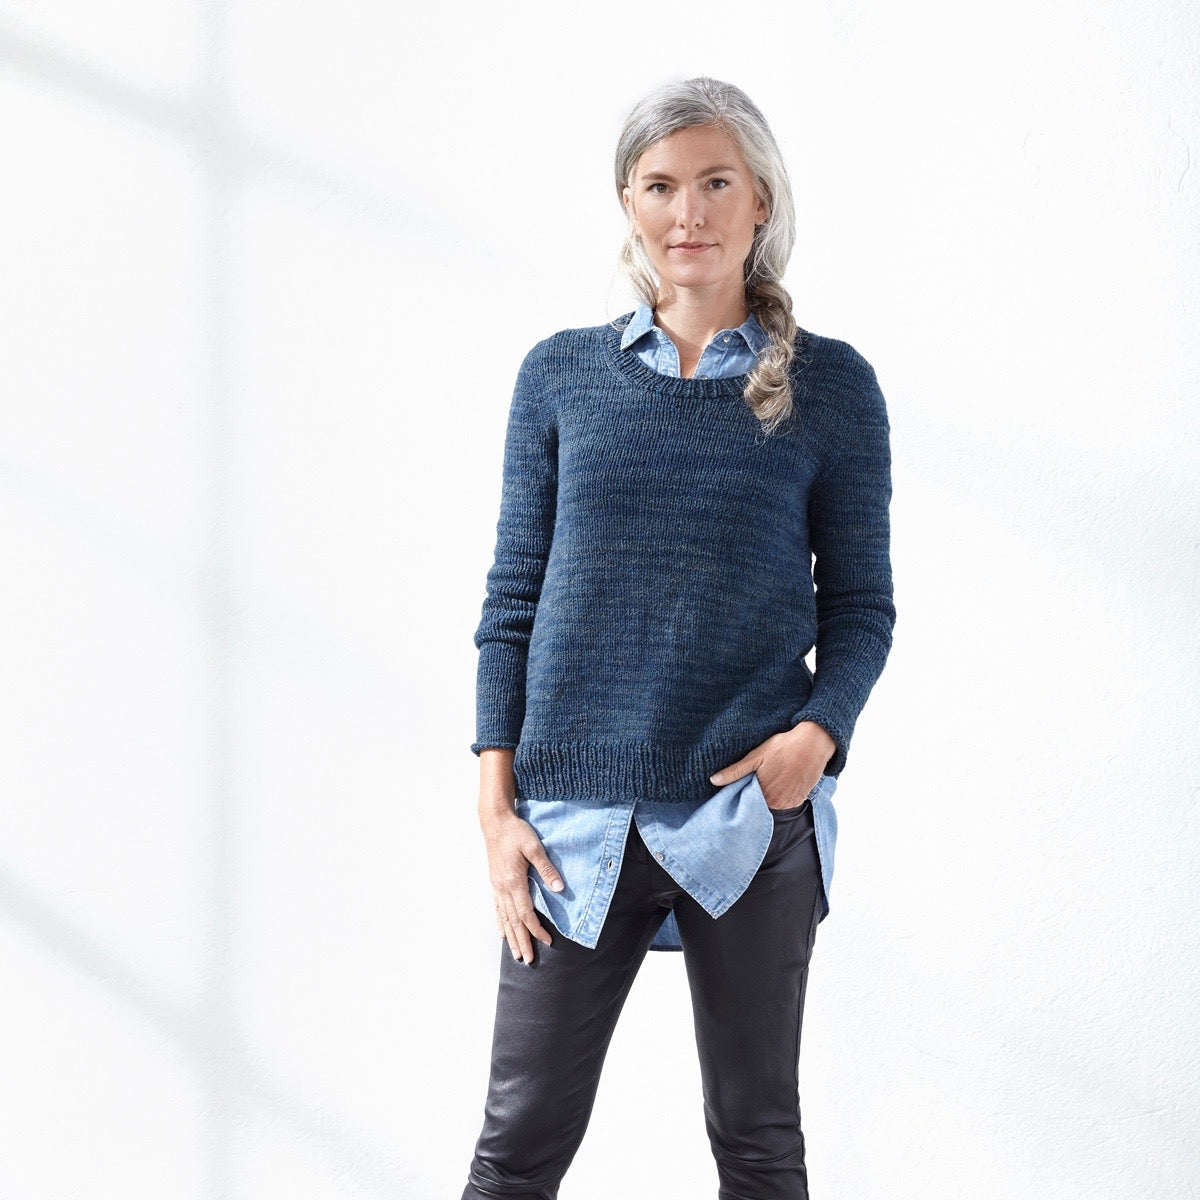 Cocoknits Sweater Workshop - April 11th, May 16th + June 13th